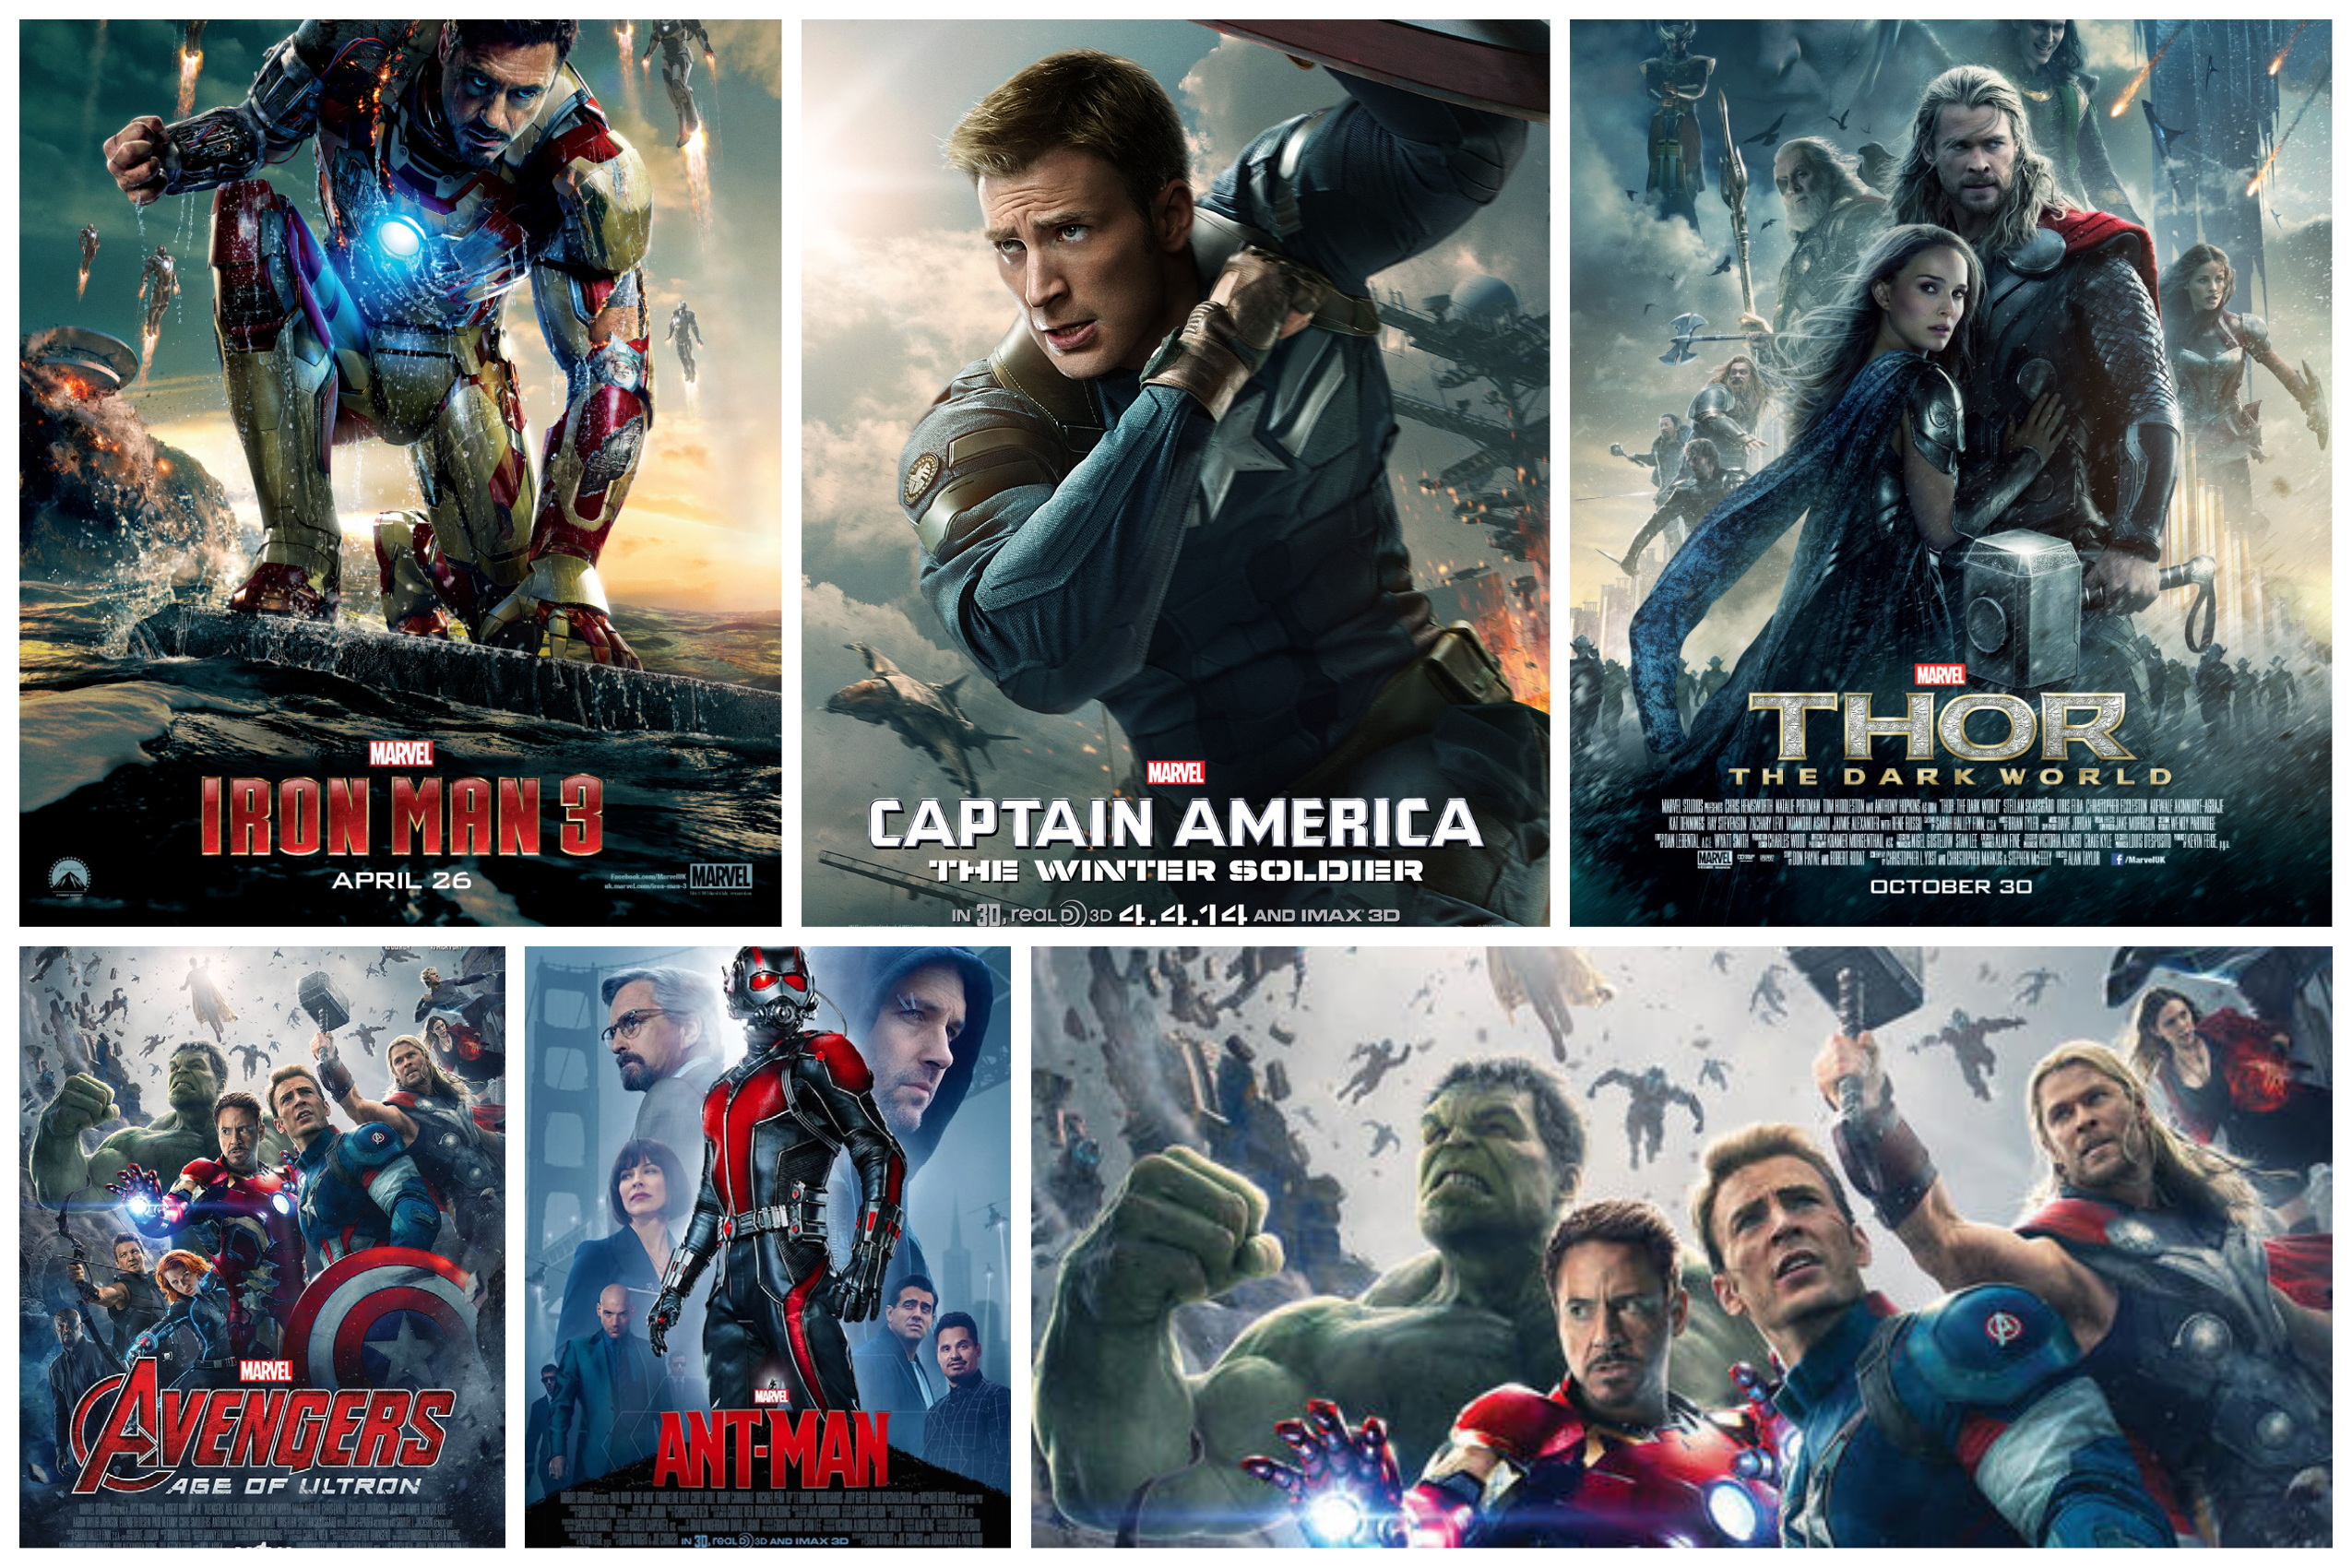 MCU's Phase Two